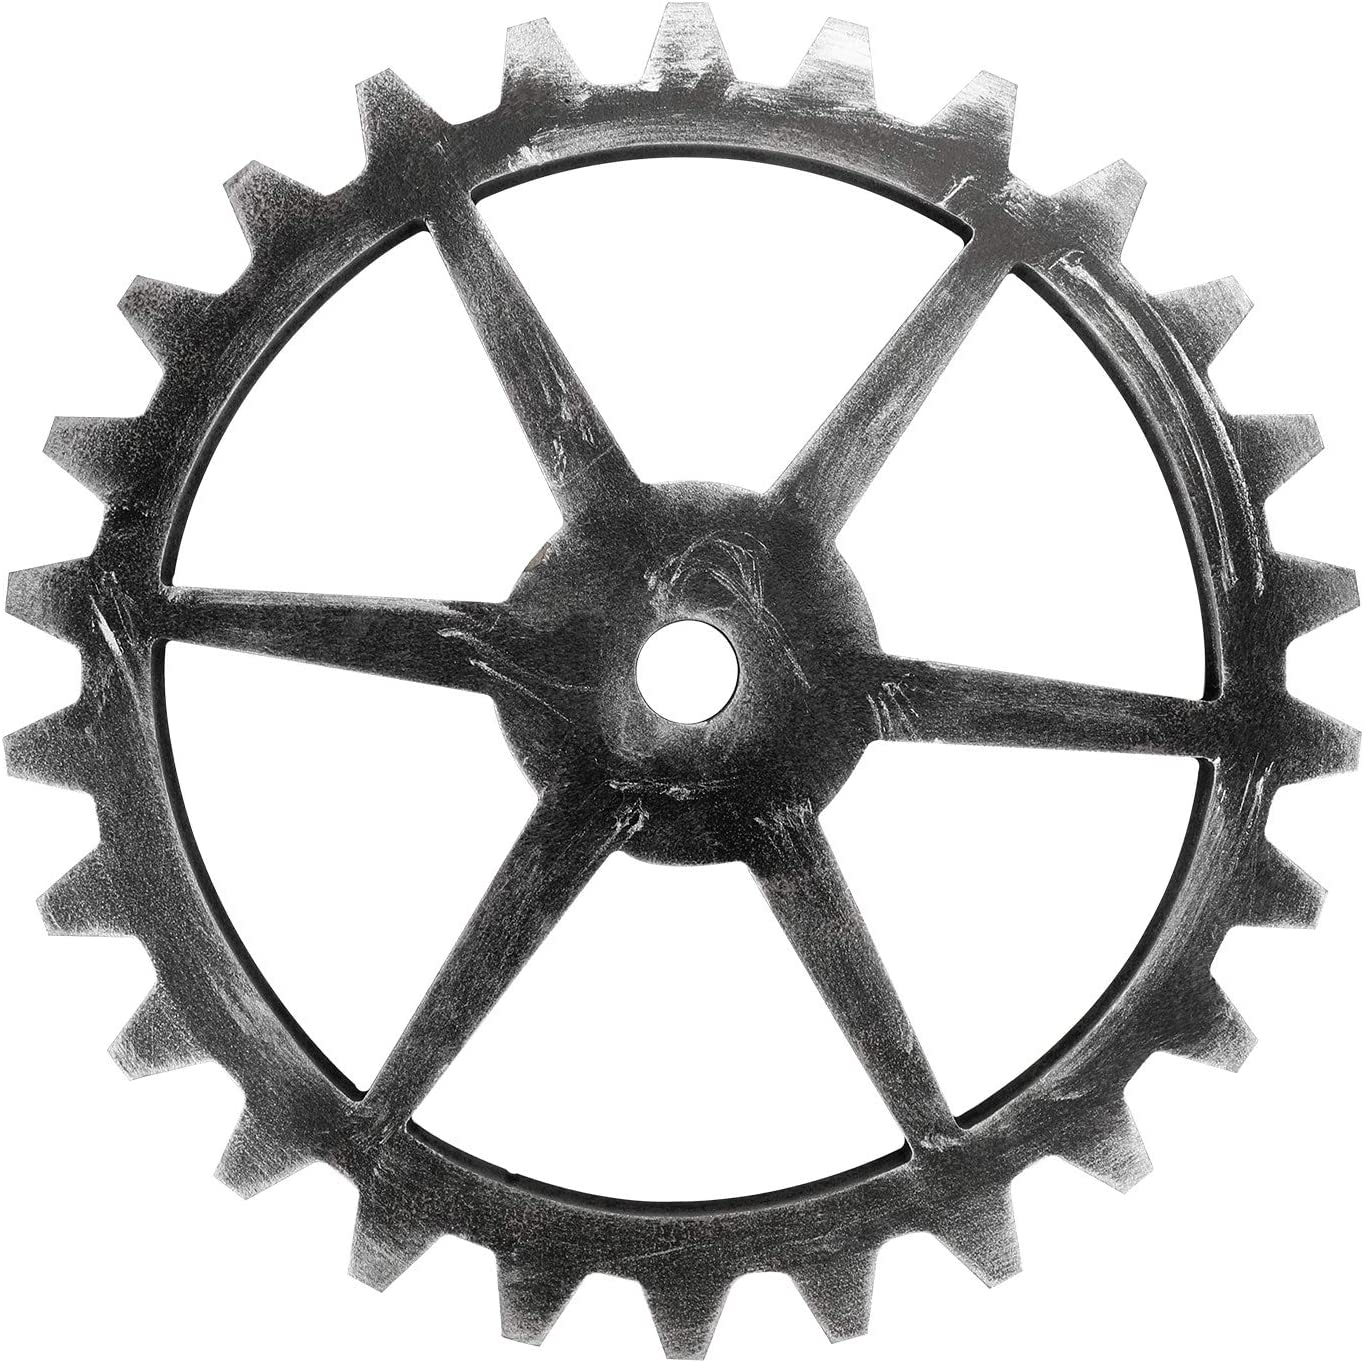 Sumnacon 11.6 Inch Industrial Steampunk Style Gear Wheel Wall Decoration, Vintage Gear Wheel Art Craft Wall Decor for Home Bar Office Hotel Cafe Resturant, Hexagon